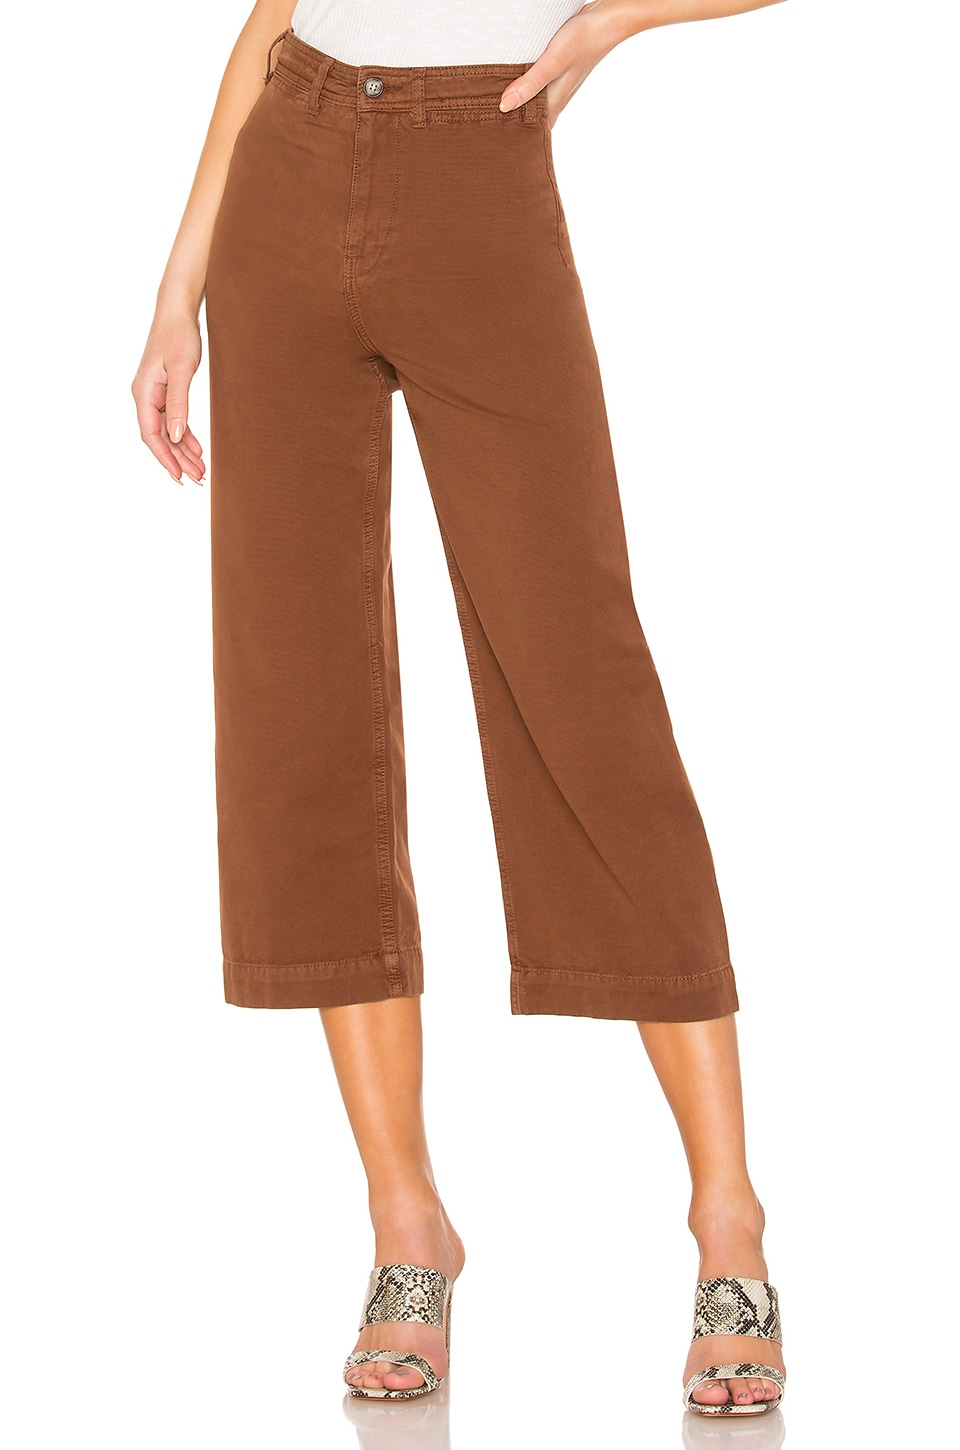 Free People Pants FREE PEOPLE PATTI PANT IN CHOCOLATE.